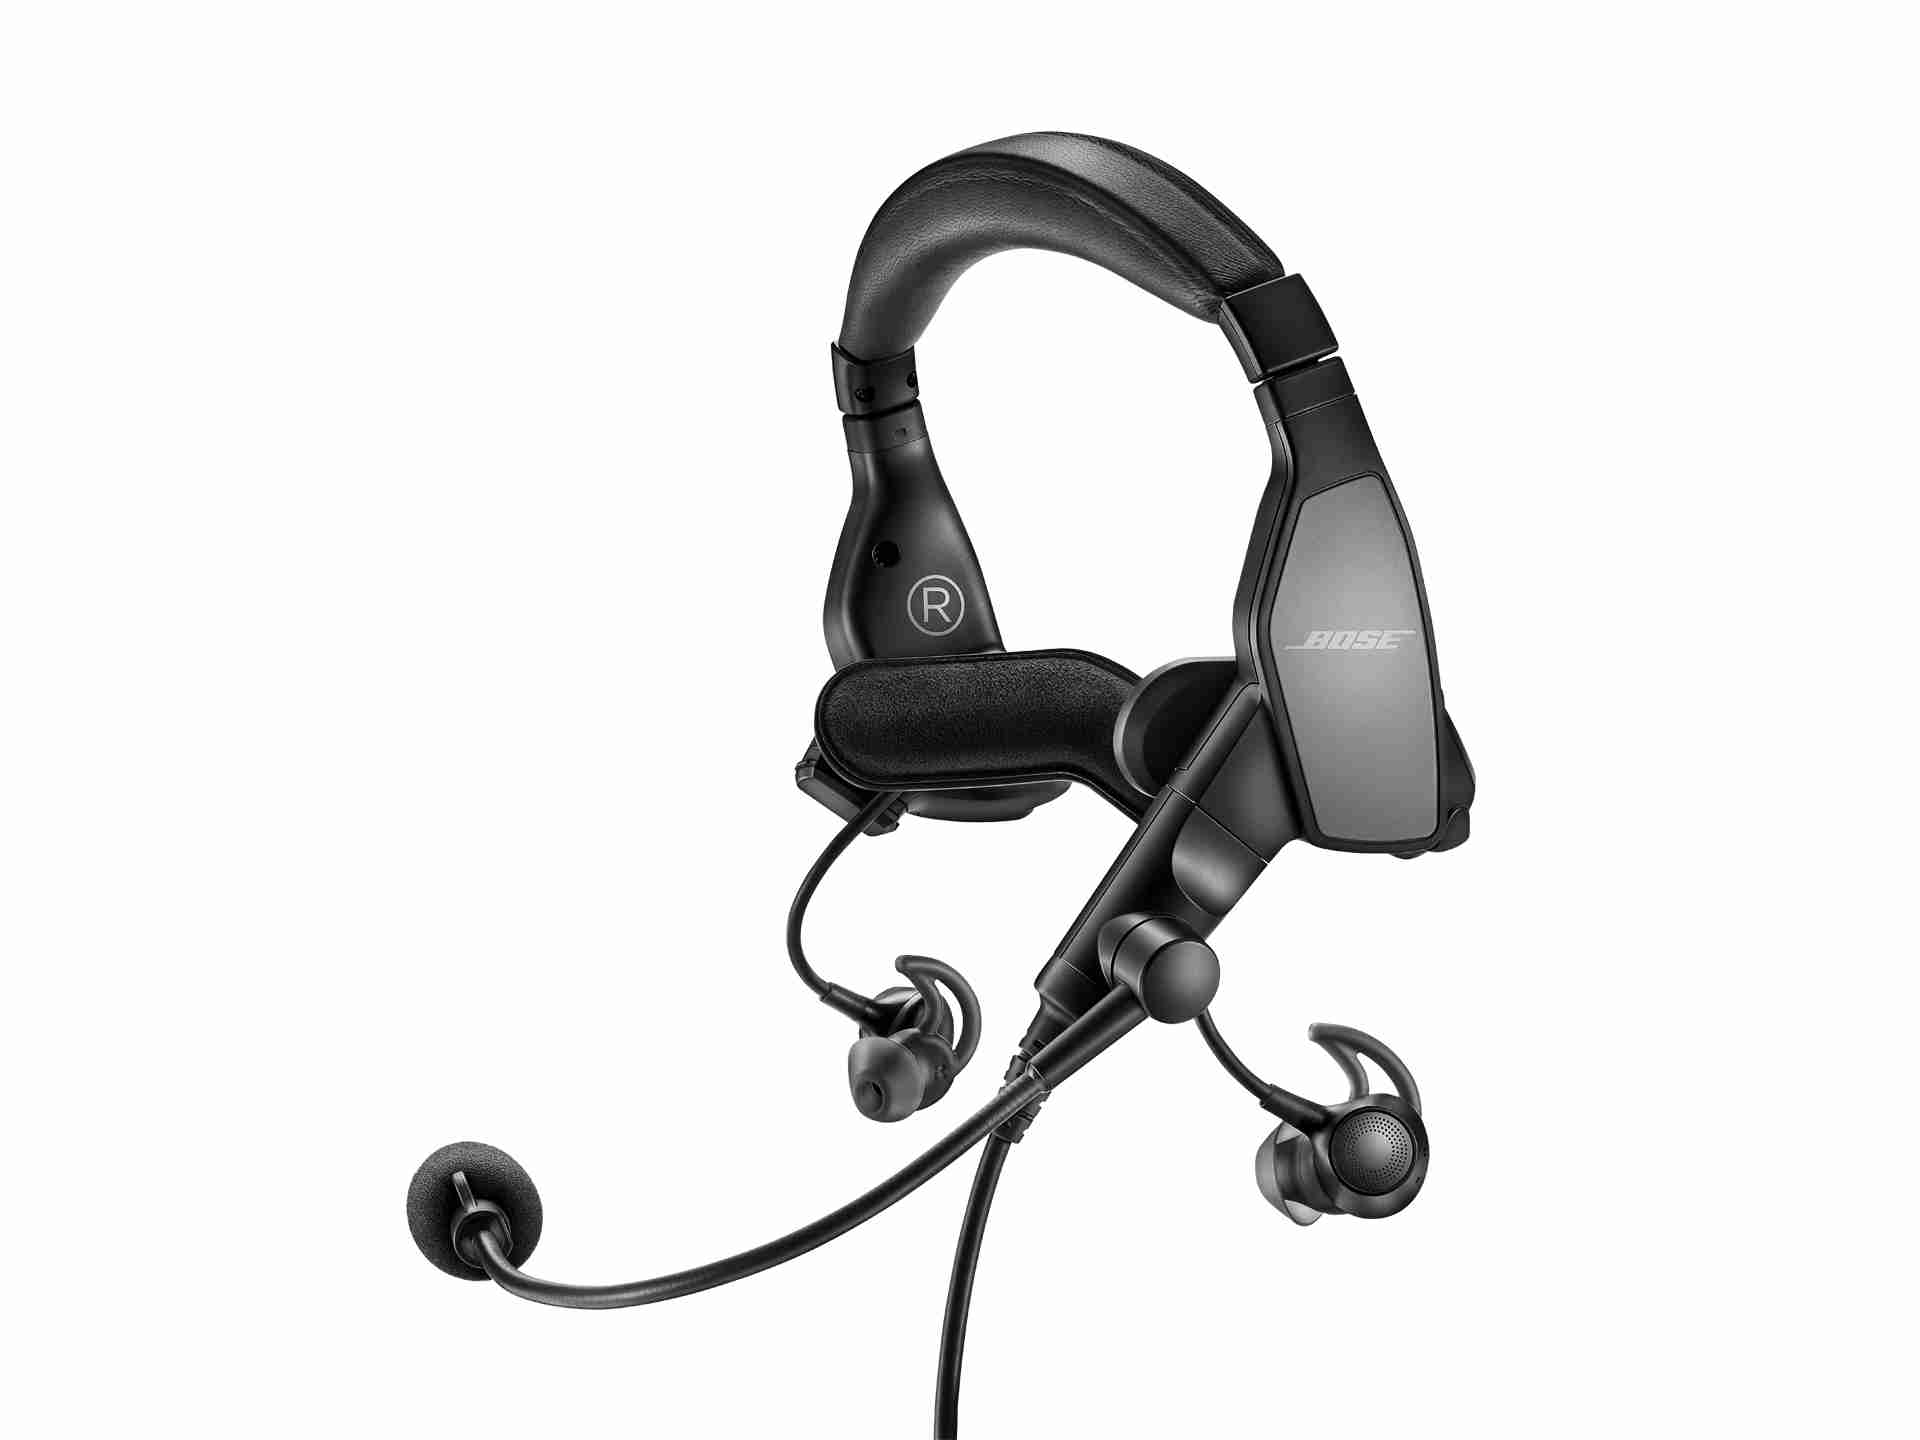 Casque d'Aviation ProFlight Série 2 - Sans Bluetooth Casques Bose Bose